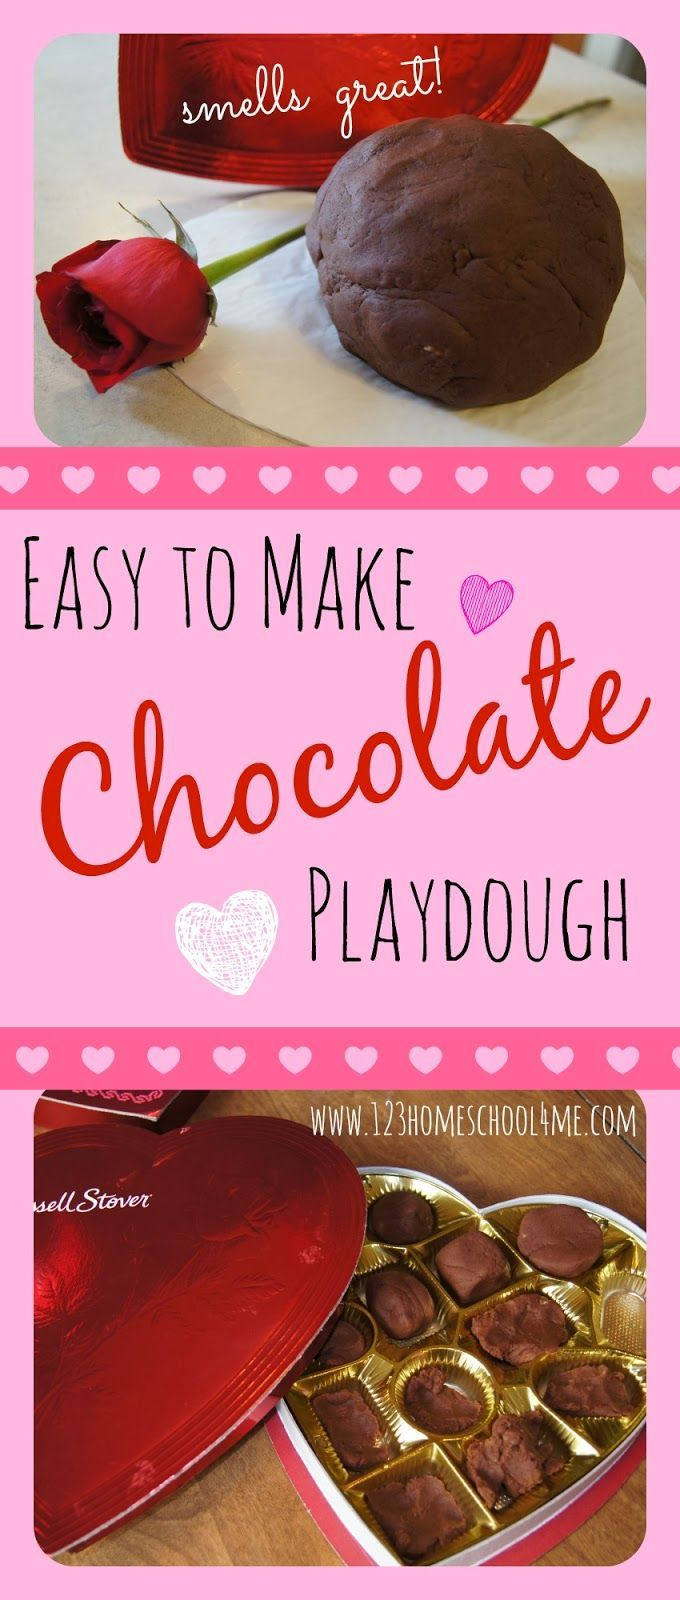 easy chocolate playdough recipe for valentines day dabbling with valentine 39 s day valentines. Black Bedroom Furniture Sets. Home Design Ideas